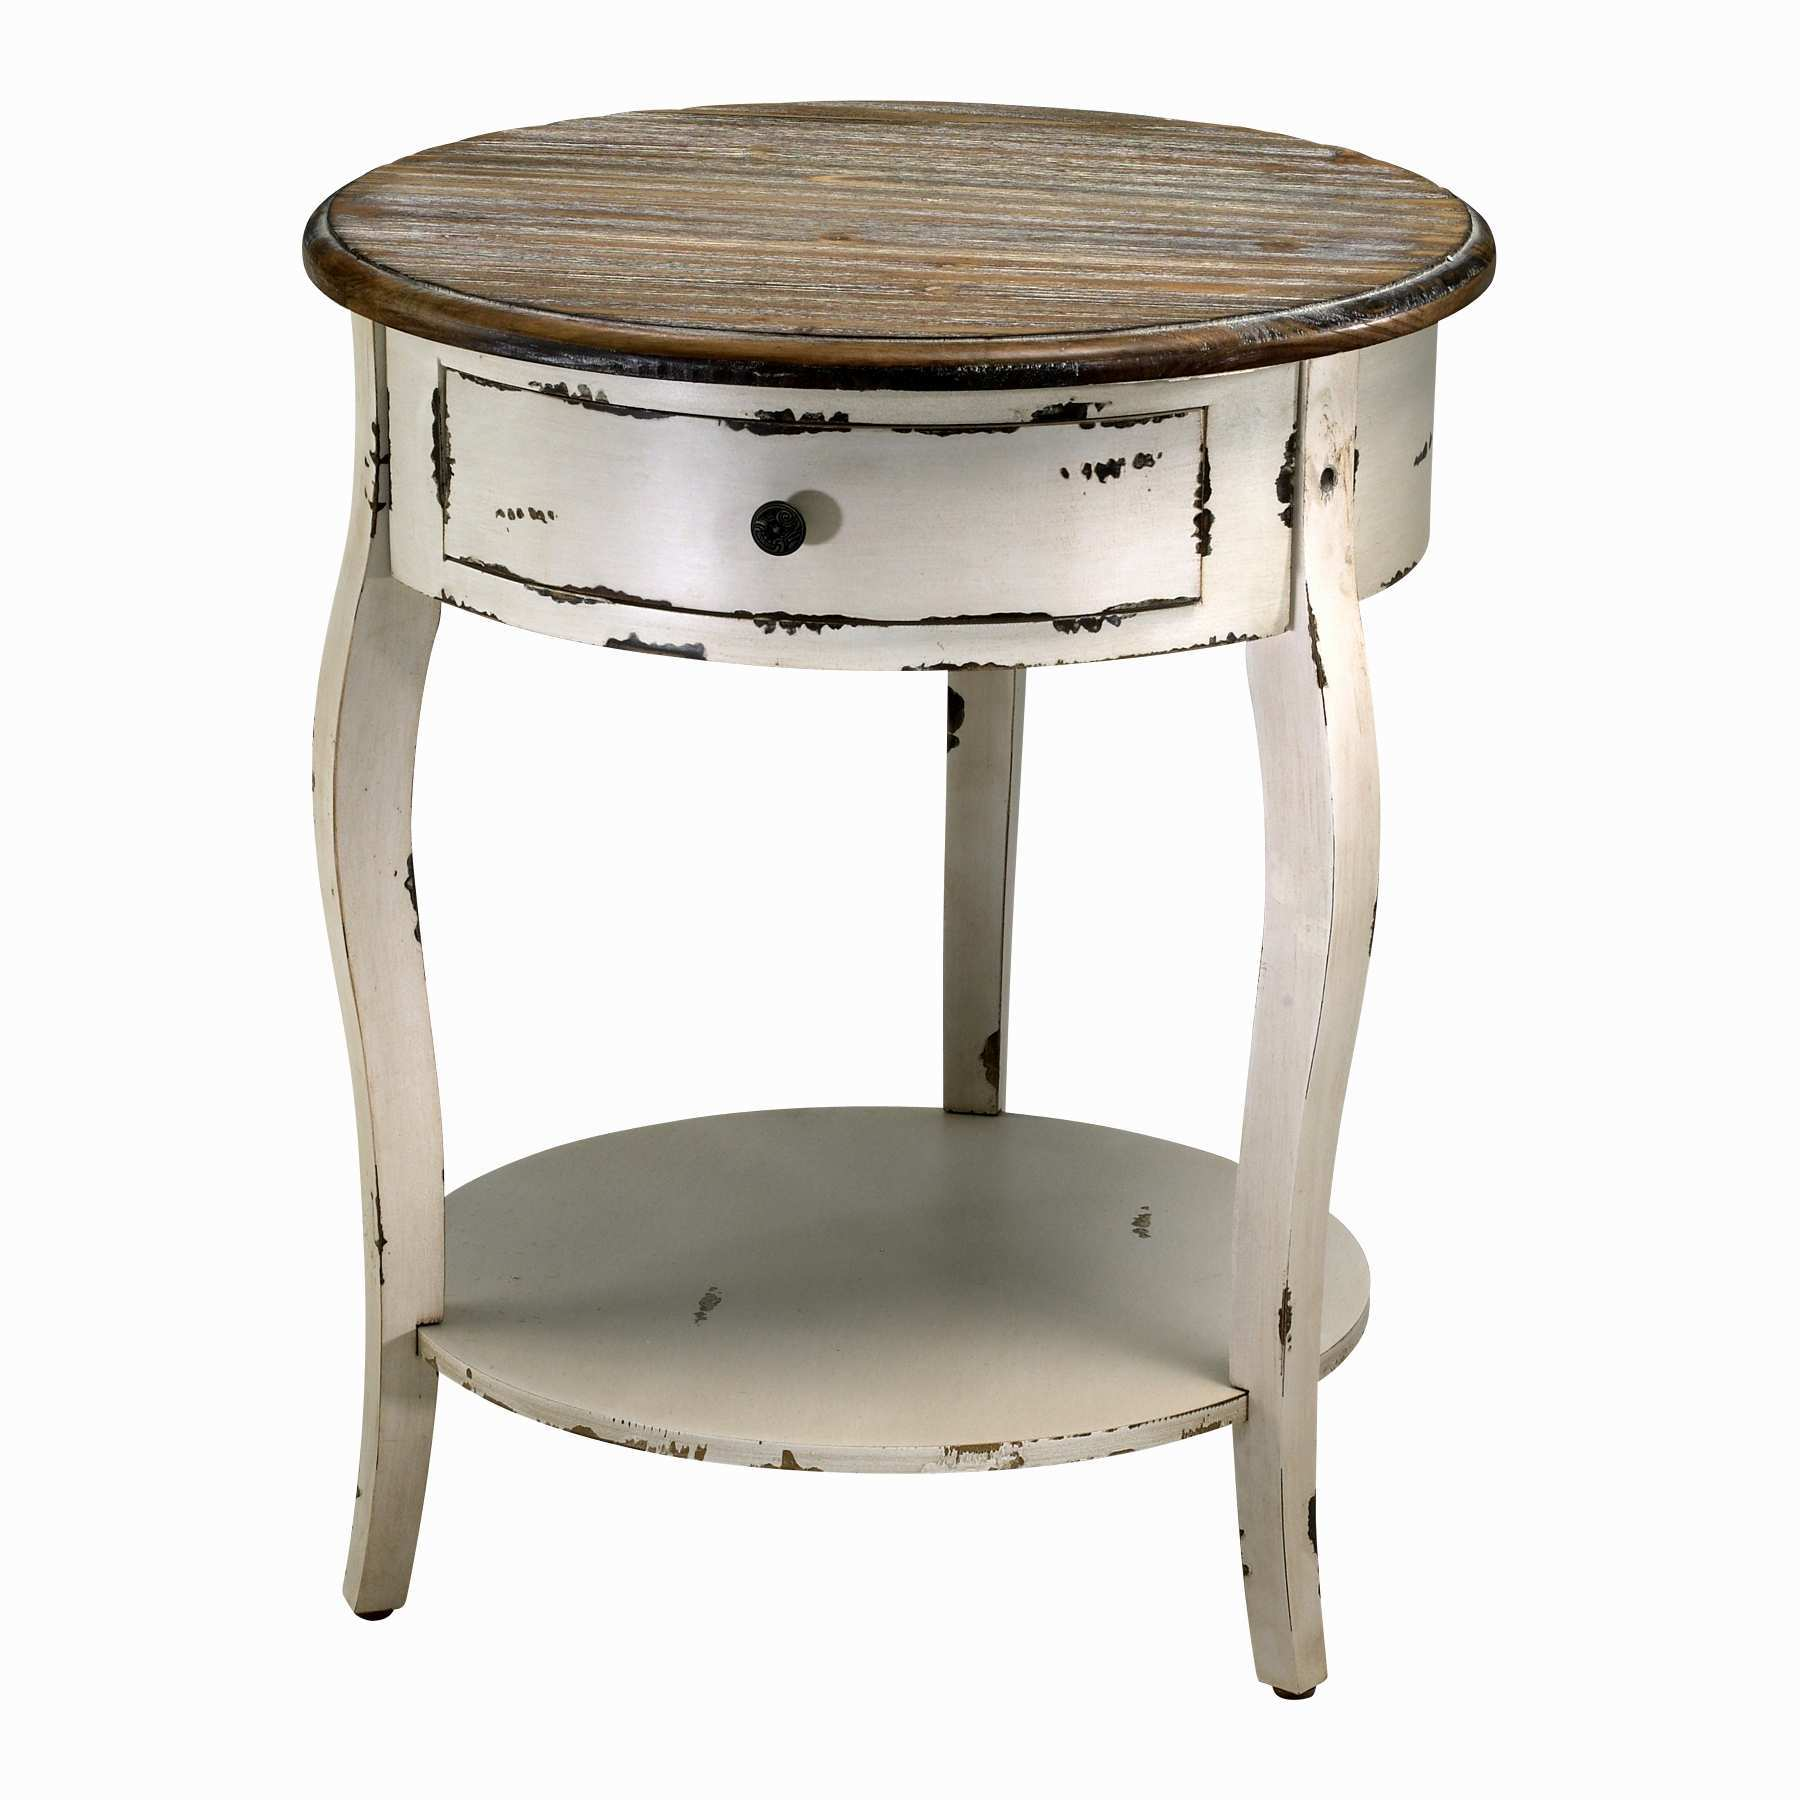 white round accent table small incredible wood side french country distressed inspiration neelan indoor door mats garden umbrella weights antique coffee and end tables cherry